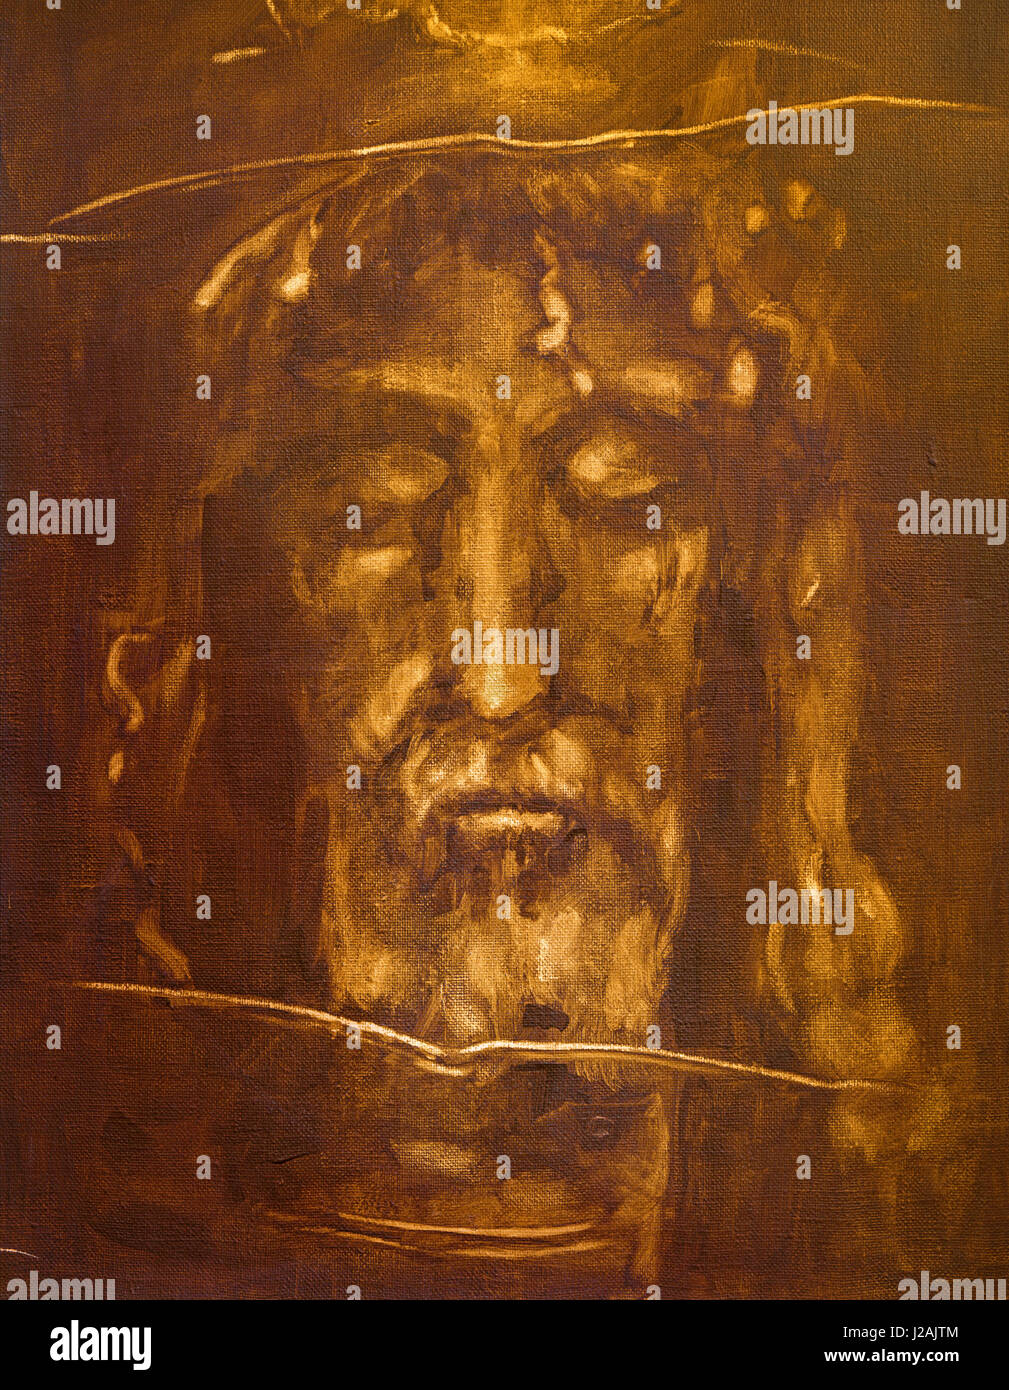 TURIN, ITALY - MARCH 13, 2017: The painting of Jesus Christ face from Shroud of Turin by unknown artist of 20 cent. - Stock Image